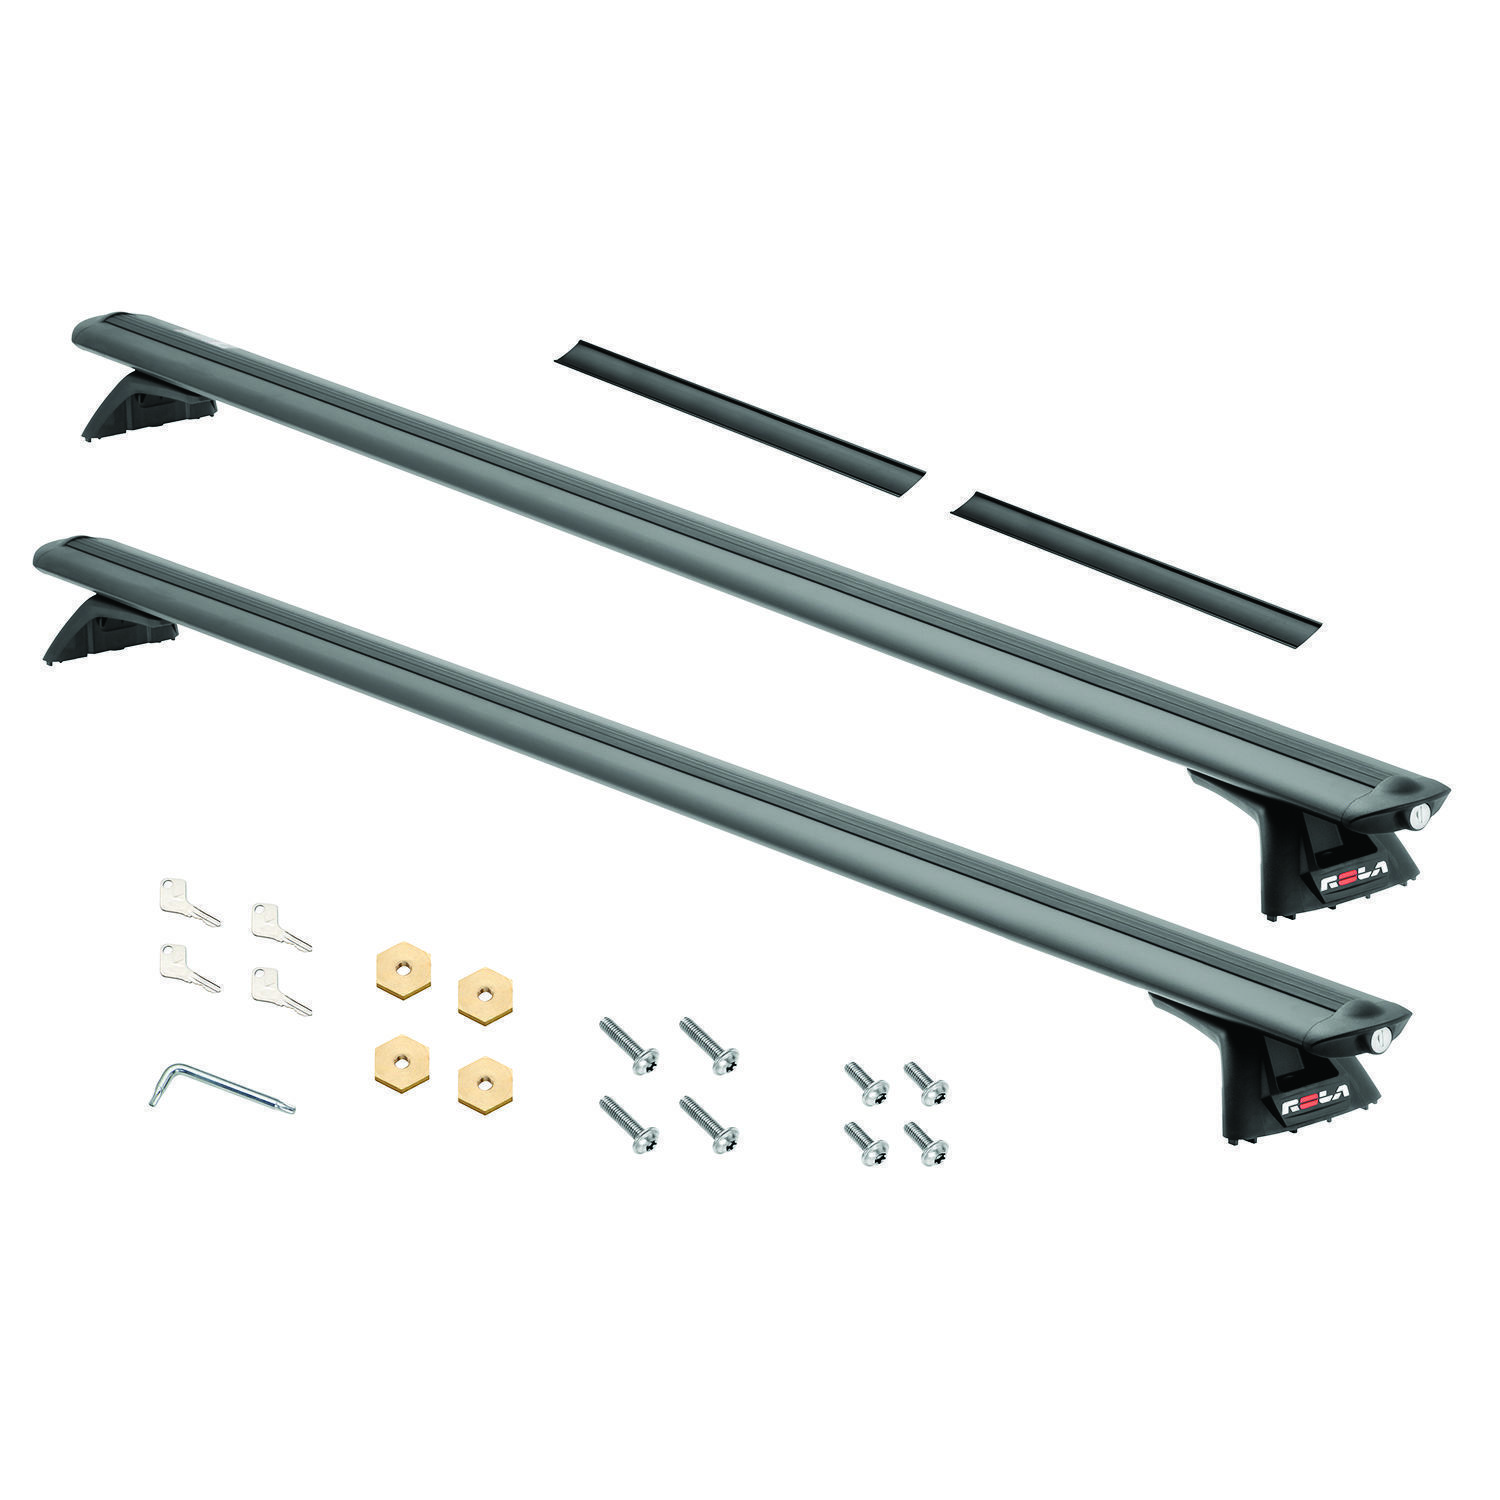 10-14 FORD TRANSIT CONNECT ROLA ROOF RACK CROSS BARS W/ TRACK RAILS SYSTEM NEW